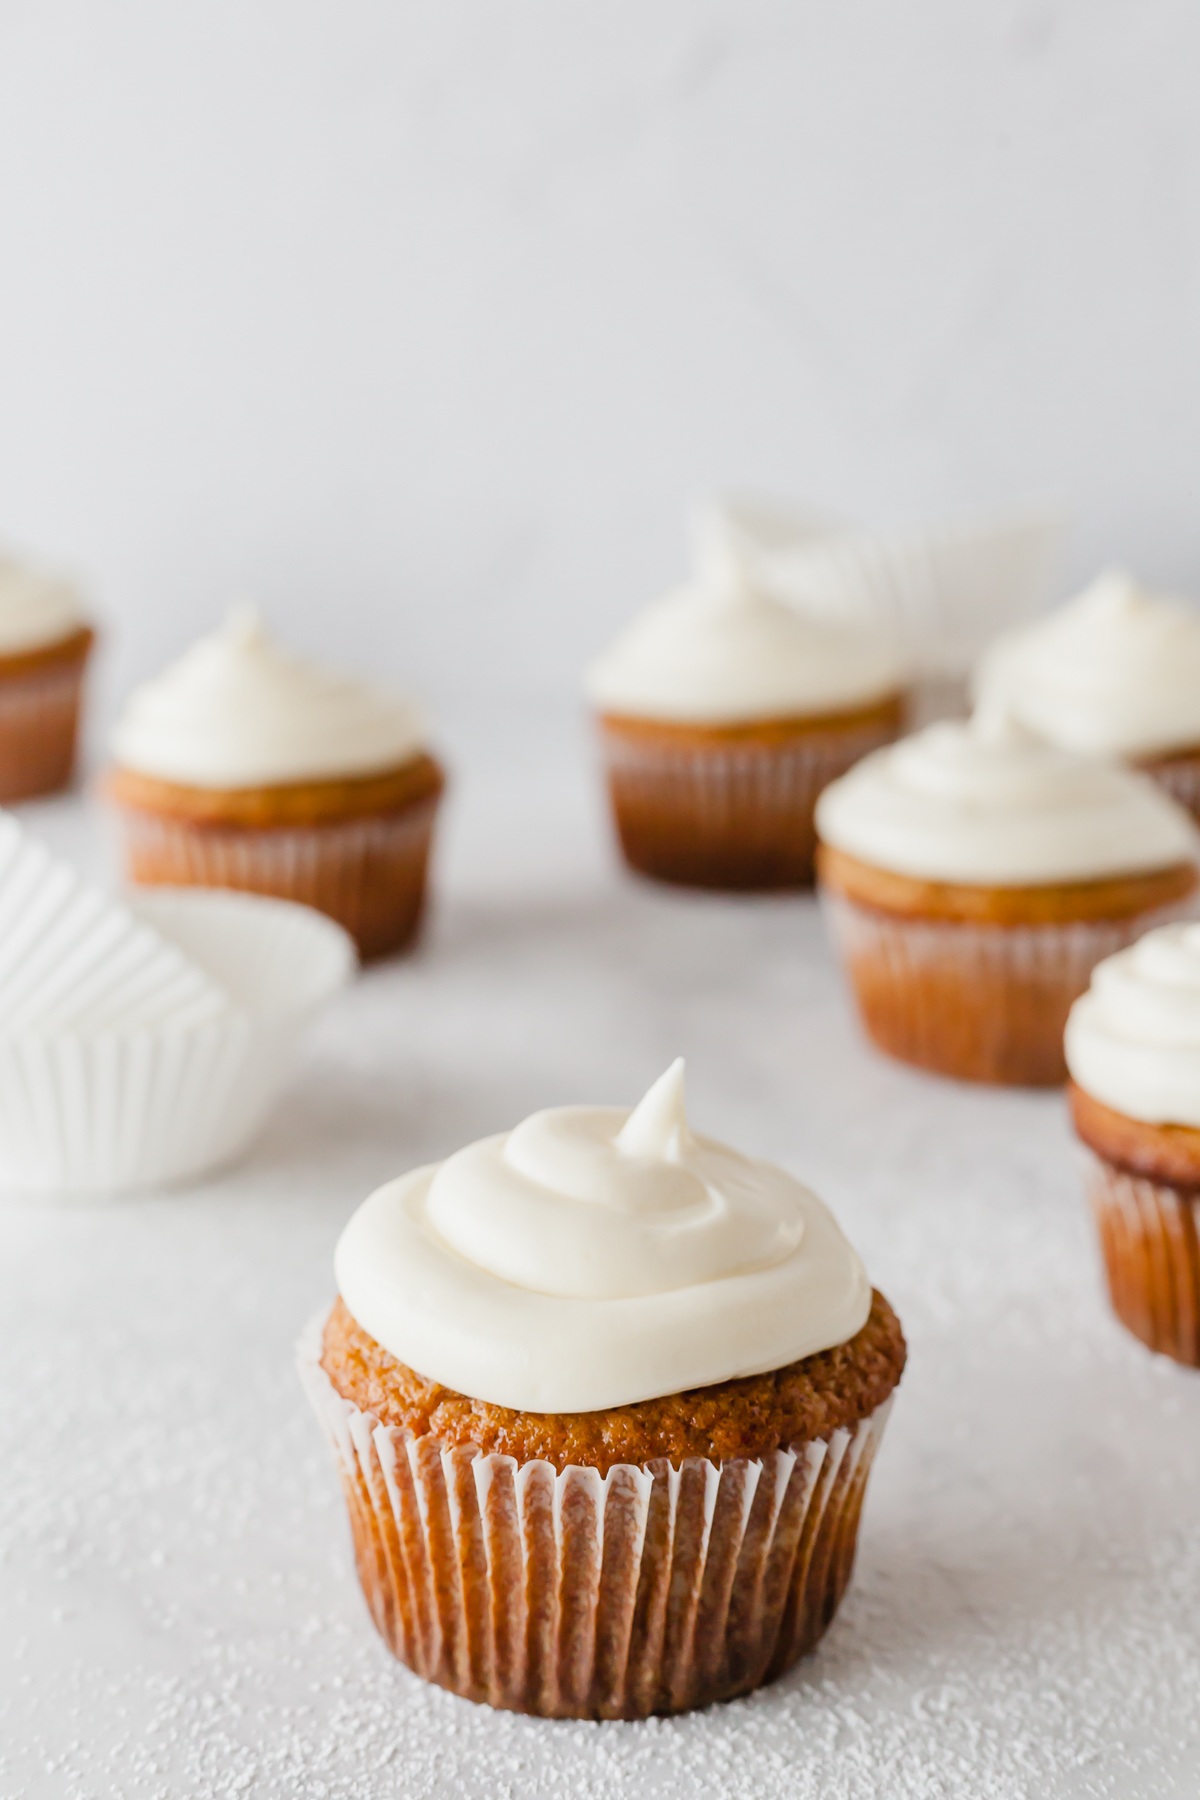 applesauce cupcakes on a white table